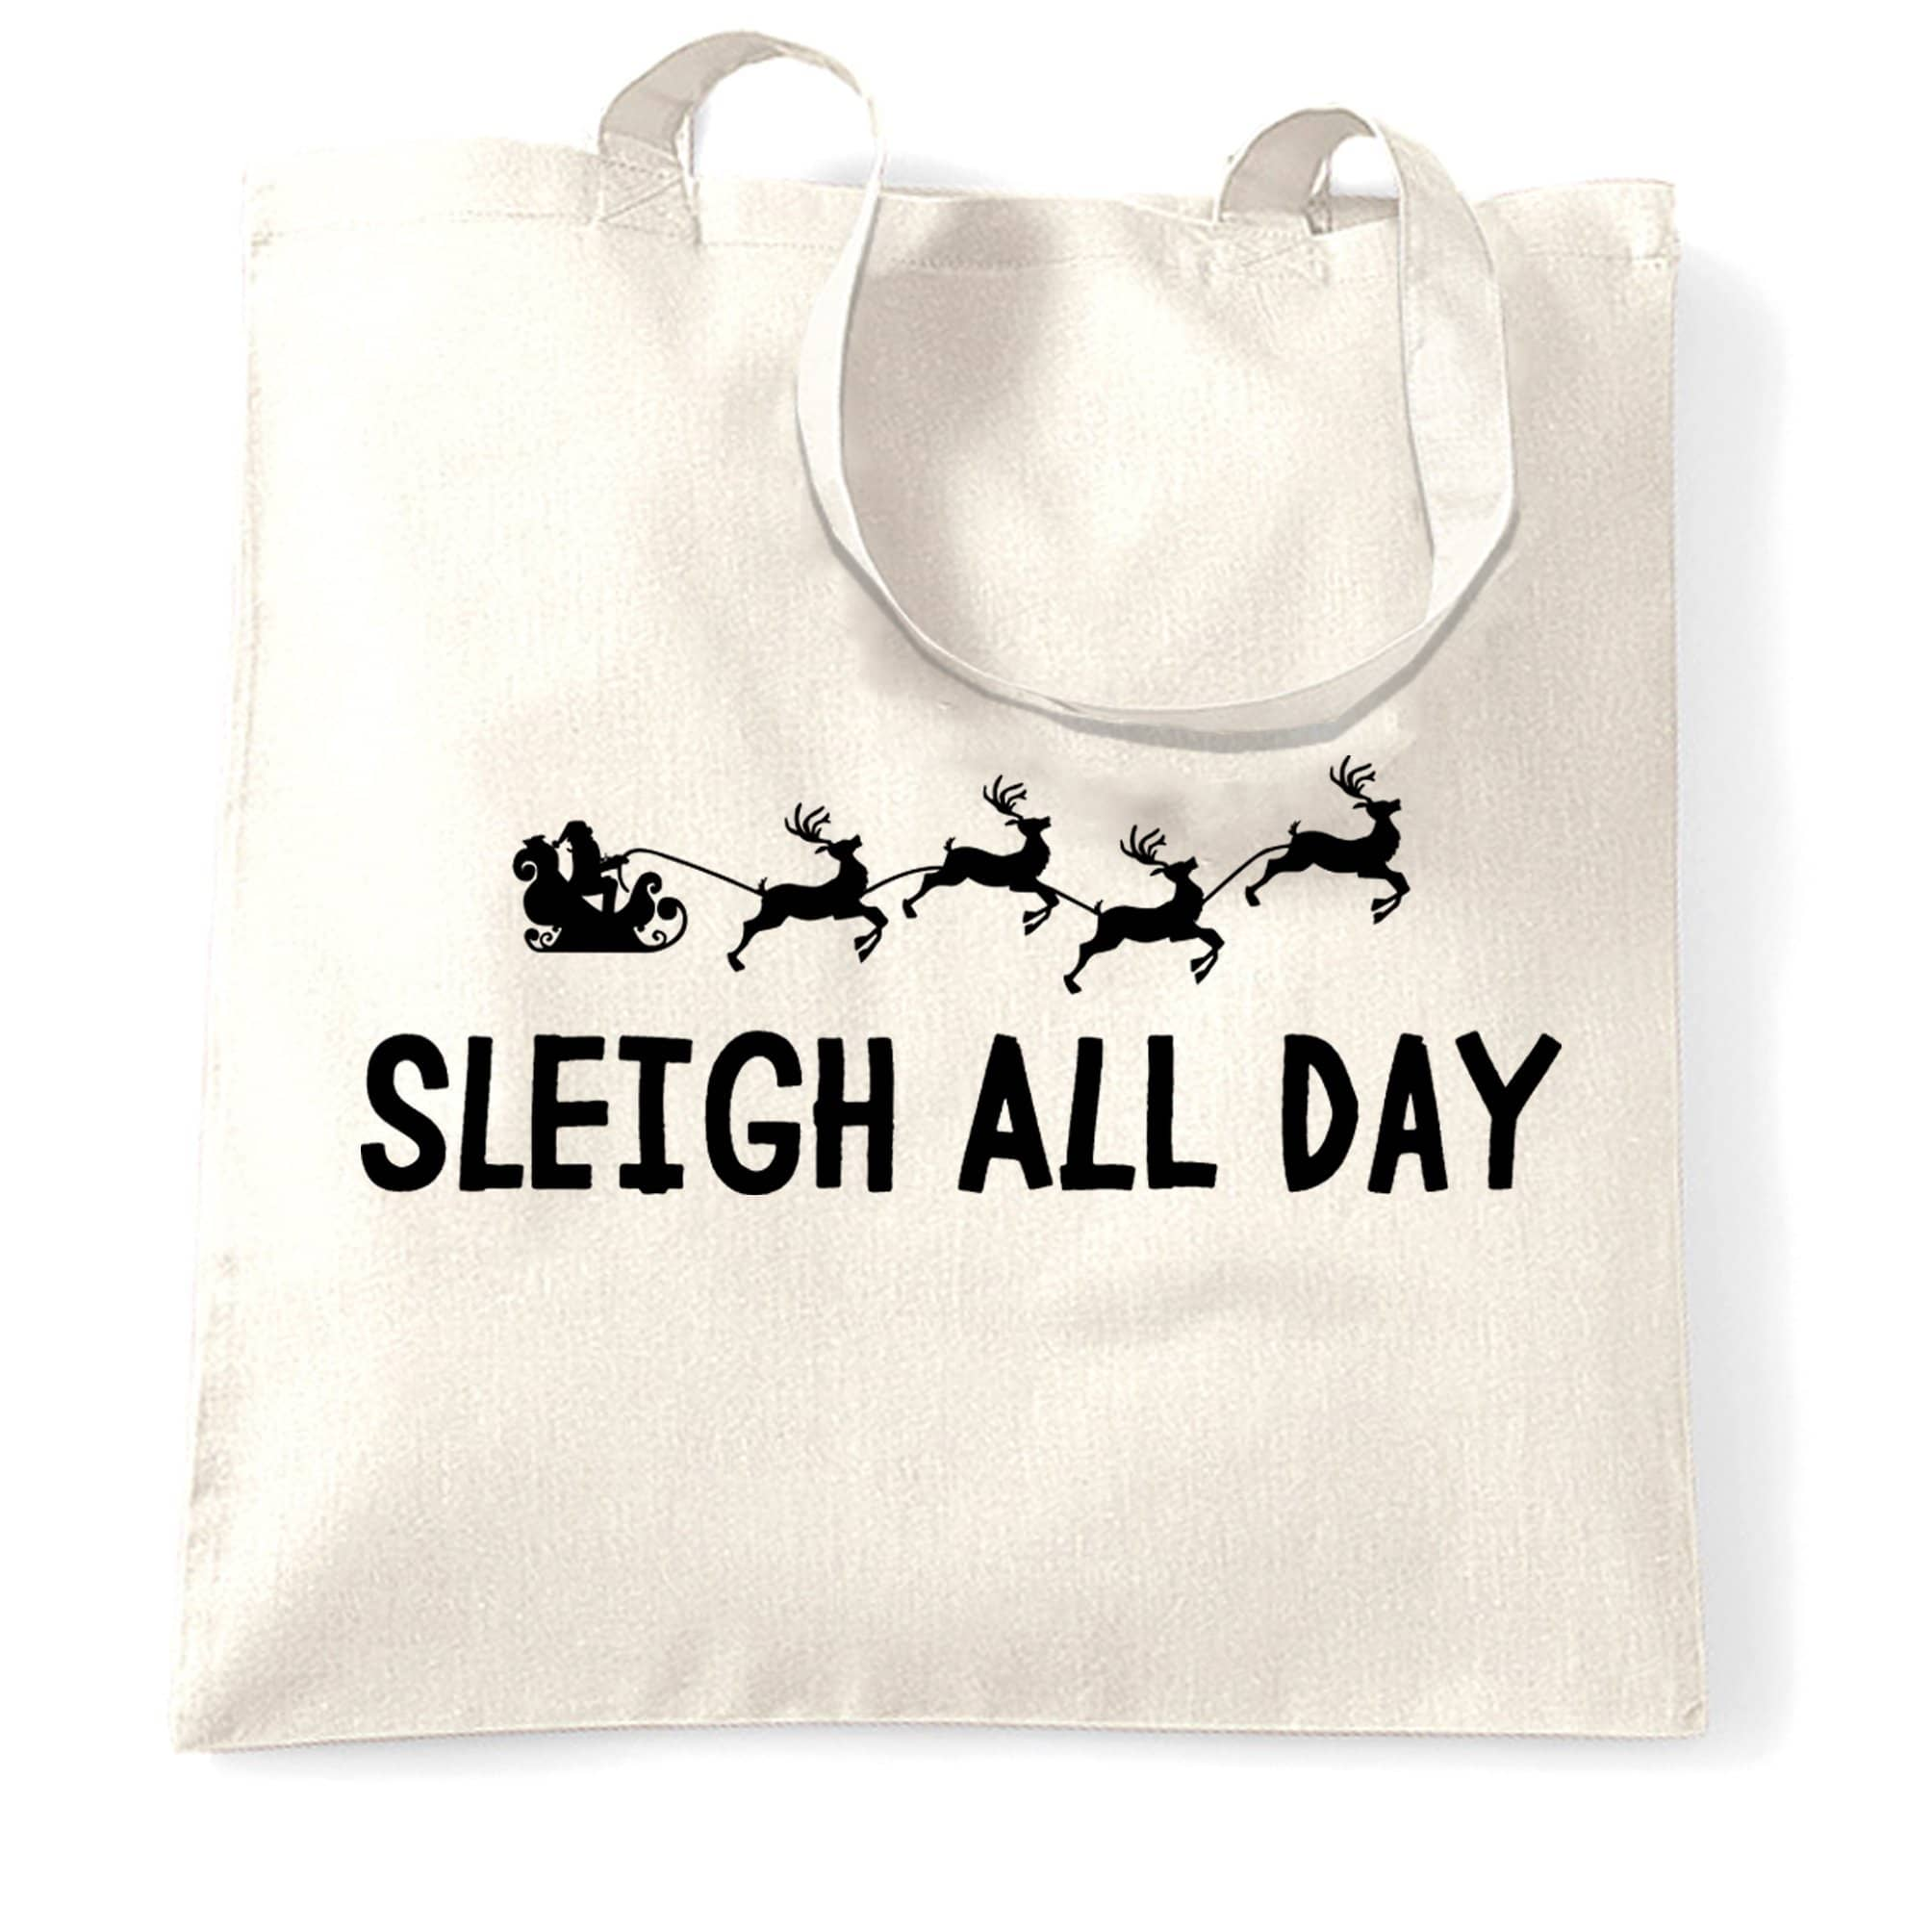 Joke Christmas Tote Bag Sleigh Slay All Day Pun Novelty